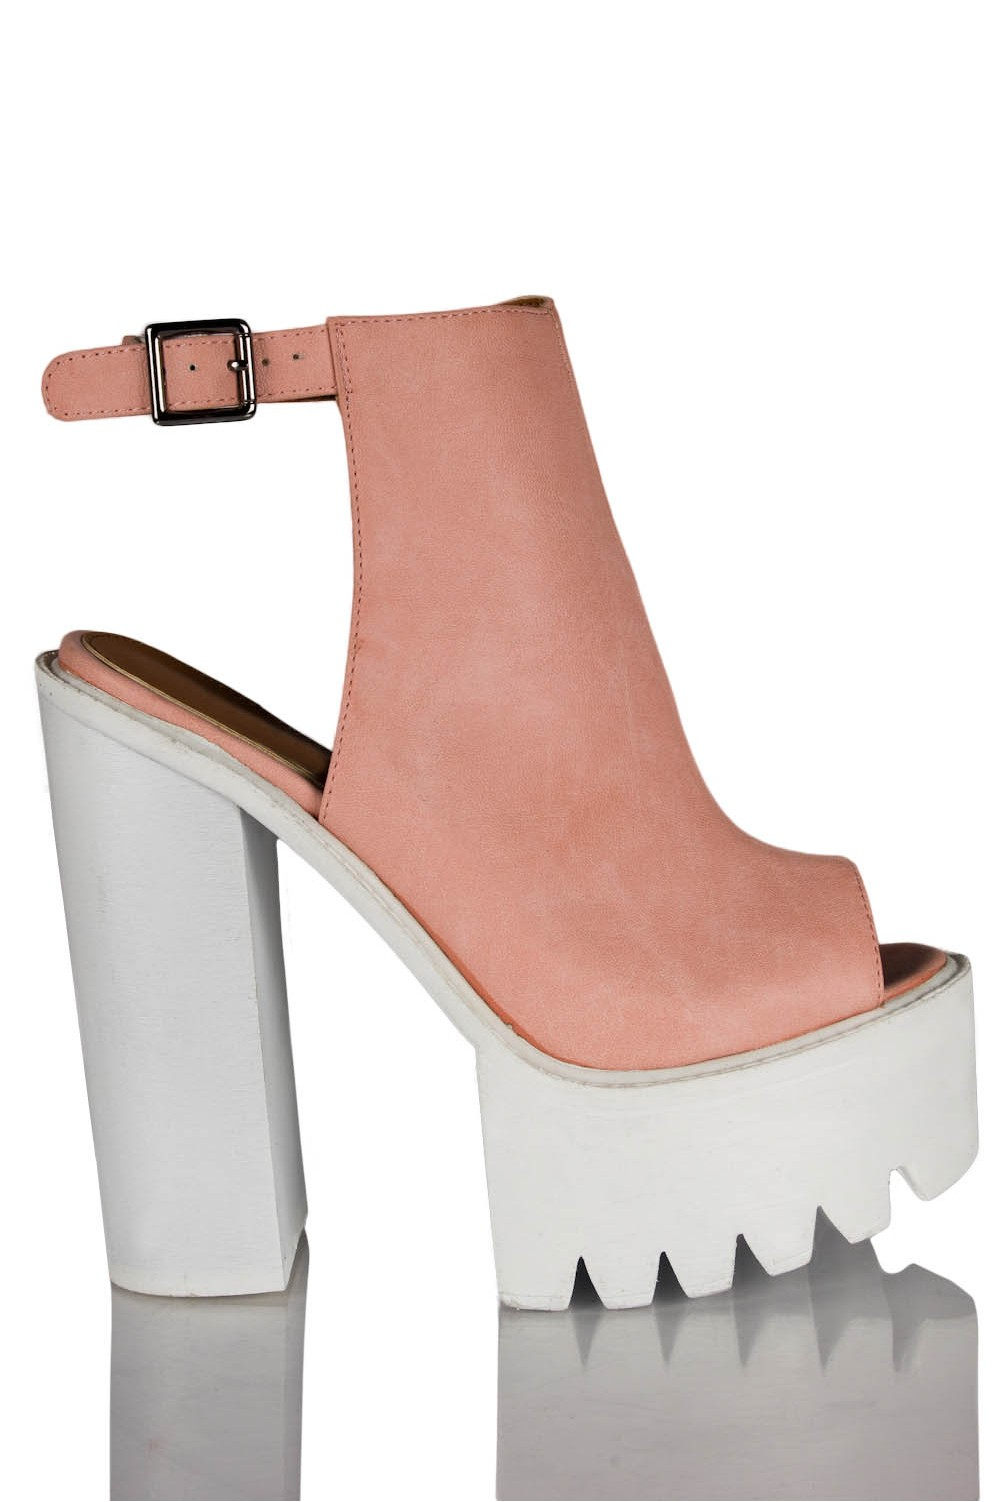 541a58328f8 Mollie Ankle Strap Peep Toe Chunky Platform Boots In Pink